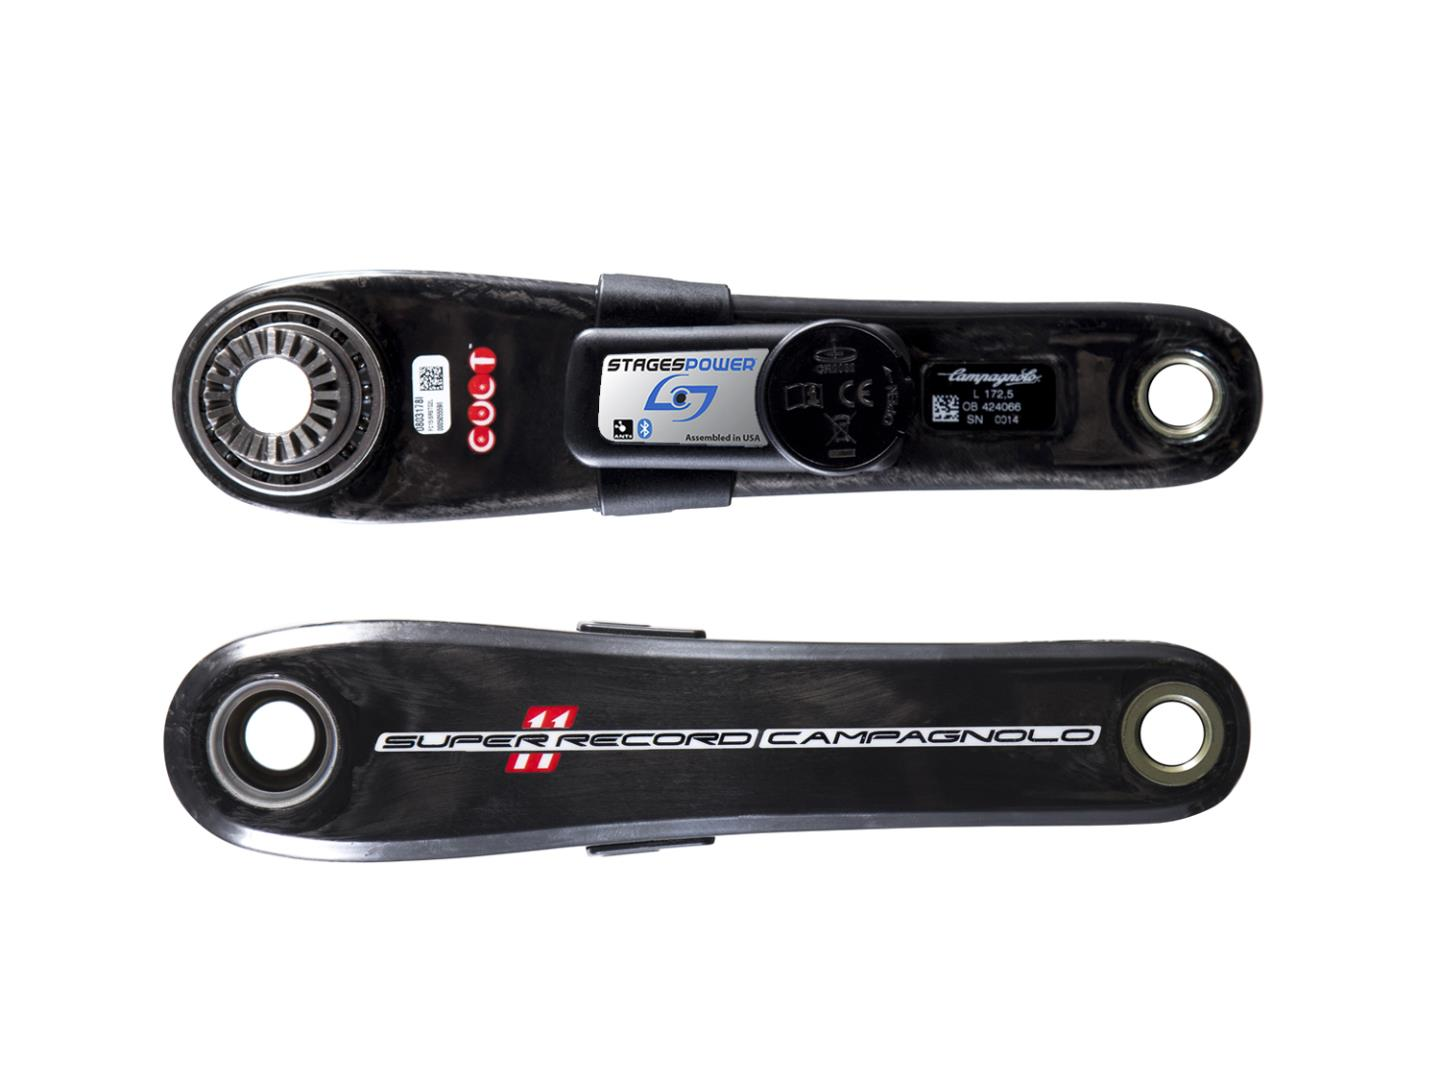 Stages Power Meter L - Campagnolo Super Record